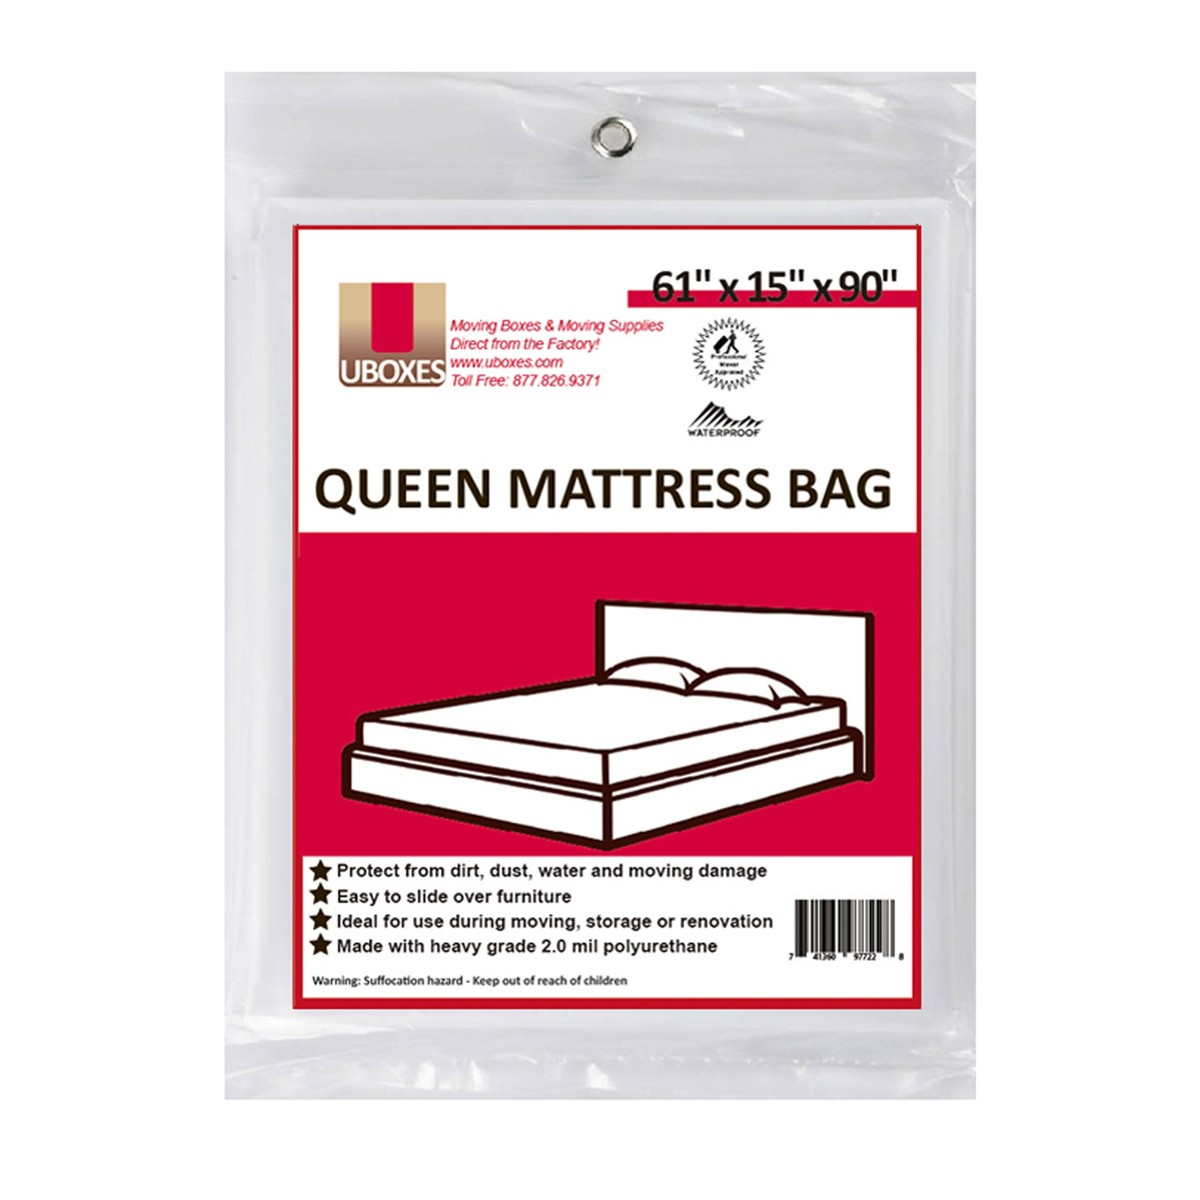 Uboxes Queen Mattress Poly Covers, 61 x 15 x 90 in, 12 Pack